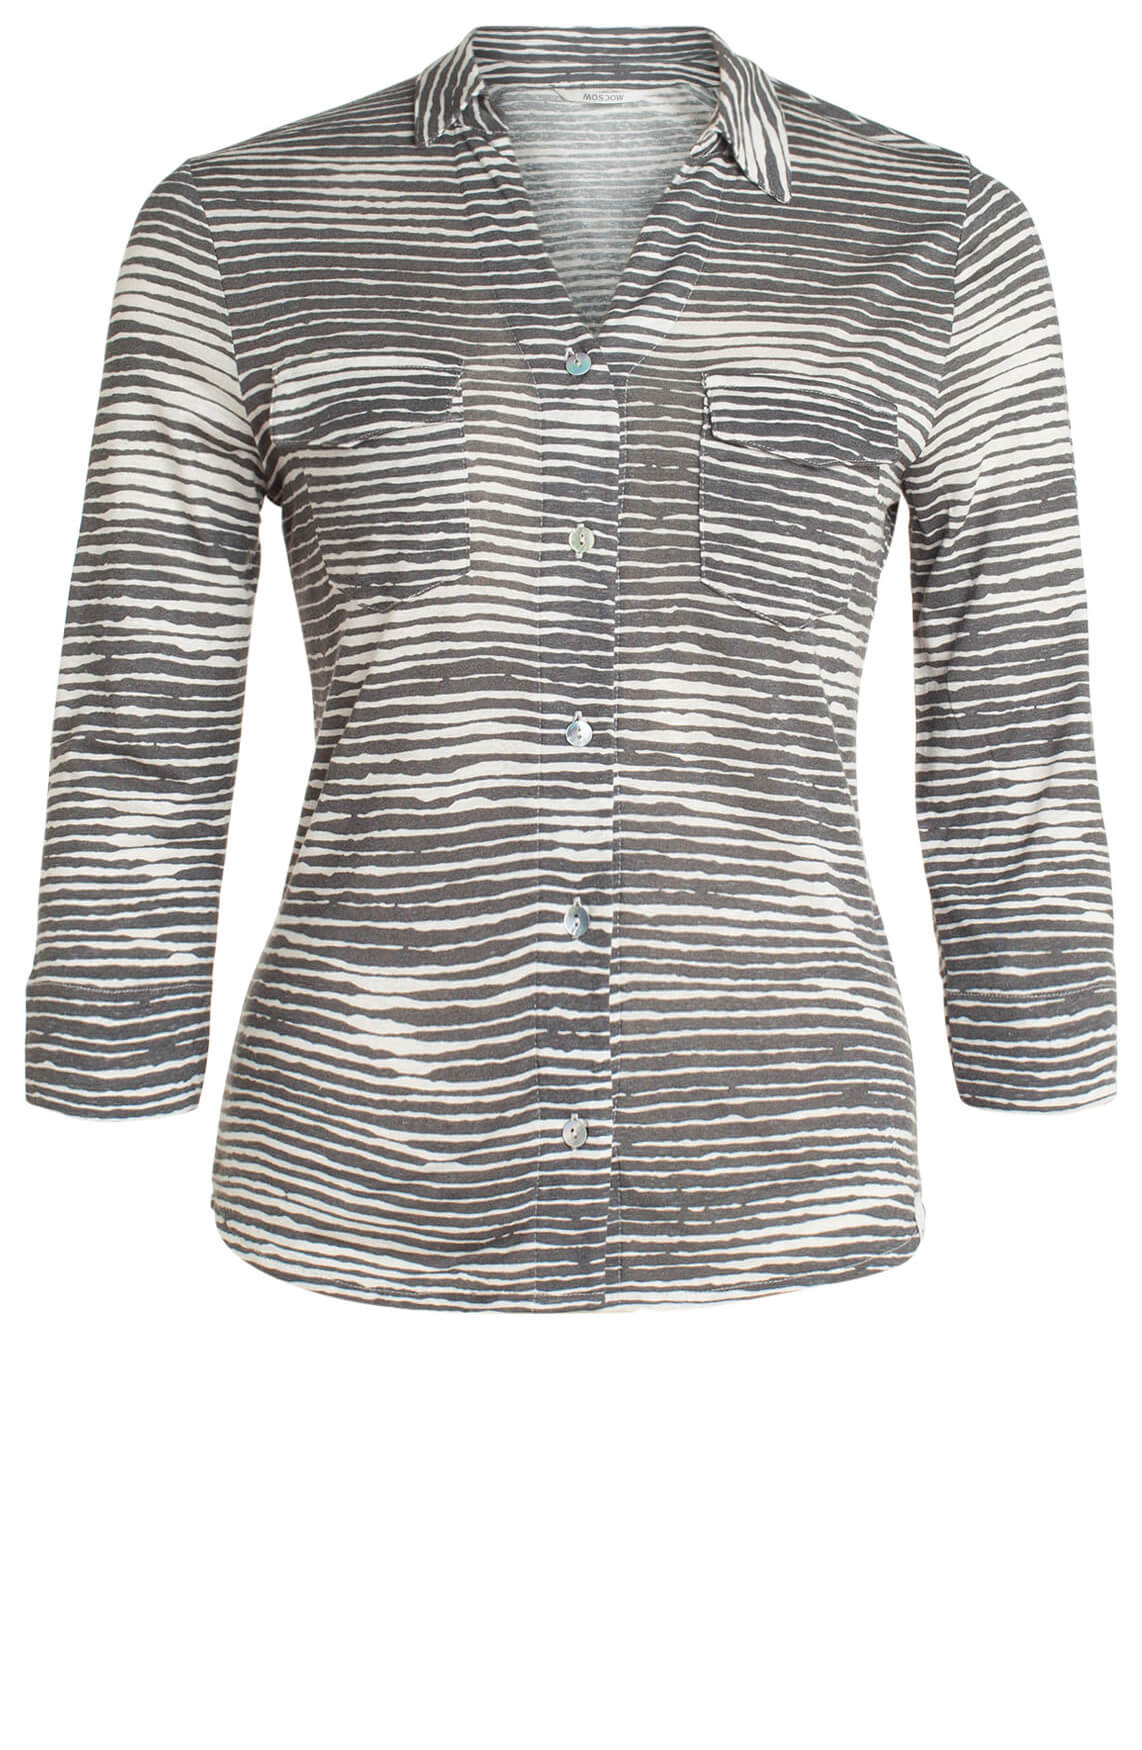 Moscow Dames Blouse met streepdessin Grijs